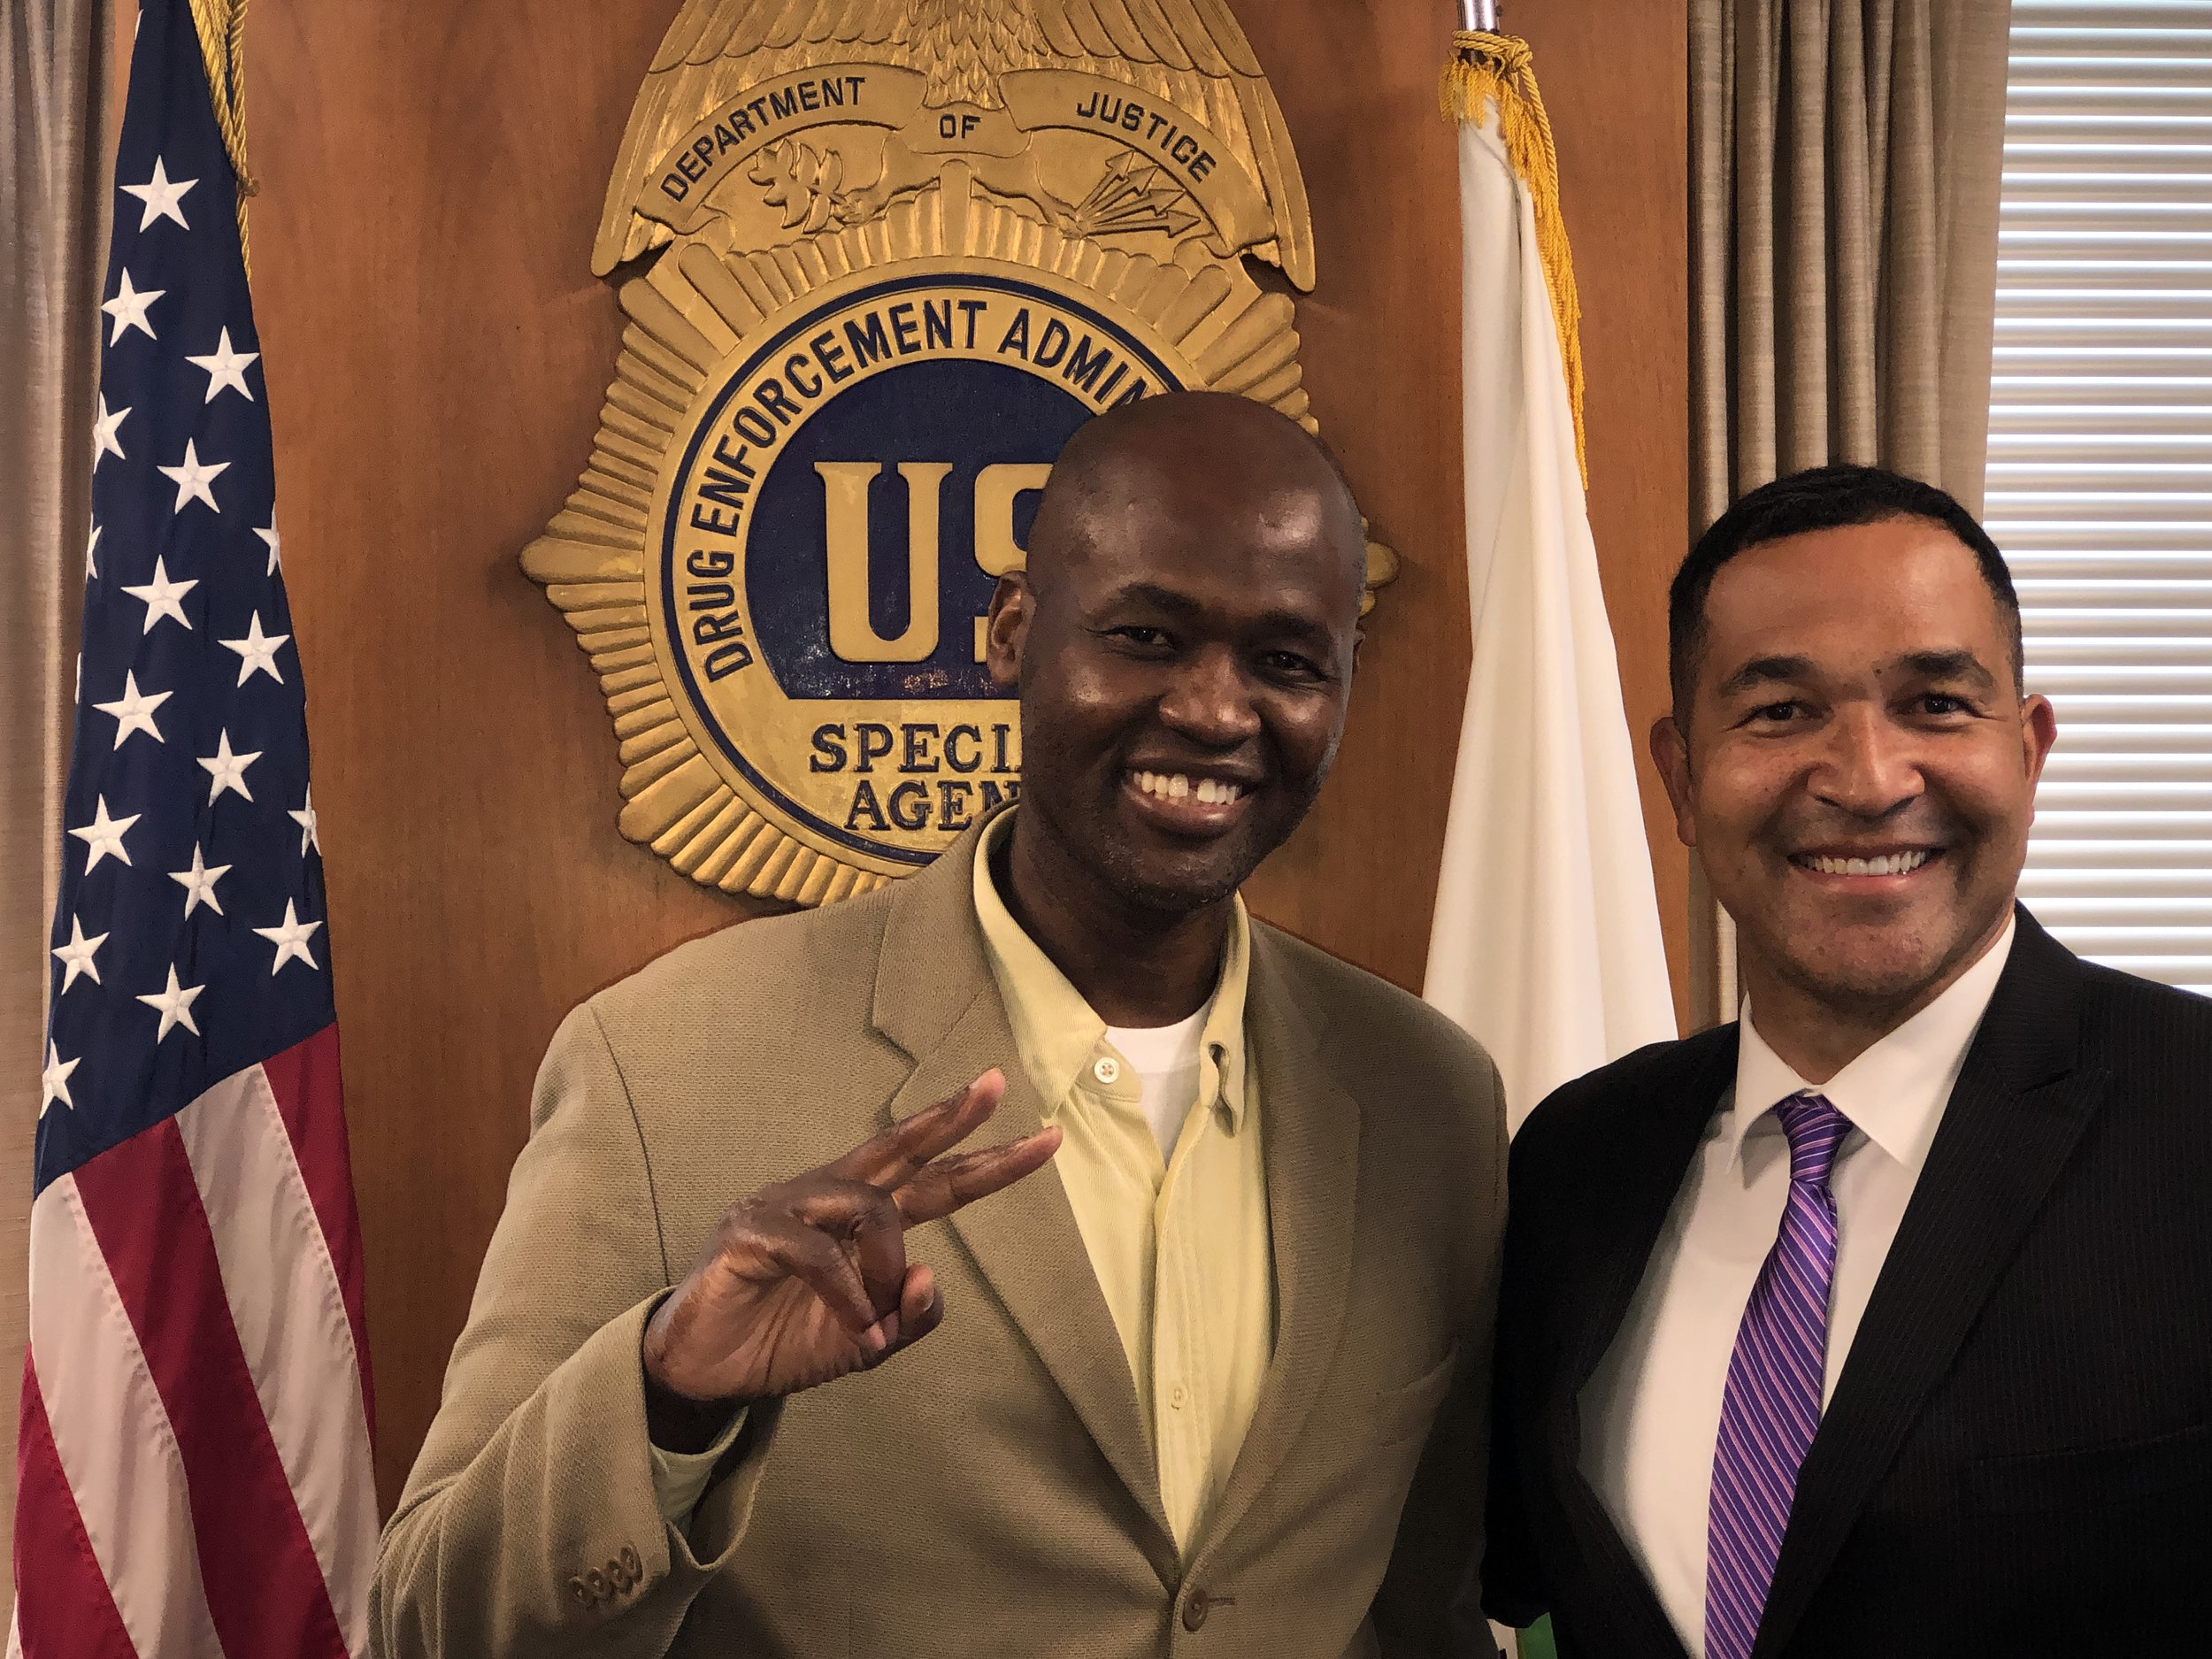 """Ray Donovan welcomes Nunyo Demasio, host of NUNYO & COMPANY, to his Manhattan office during summer 2019. (In case you're wondering, the DEA agent is half Irish and half Puerto Rican. Don't pretend you weren't trying to guess his ethnicity! Ray is not quite a """"brother,"""" like Nunyo who actually has an Italian last name. 🙃."""